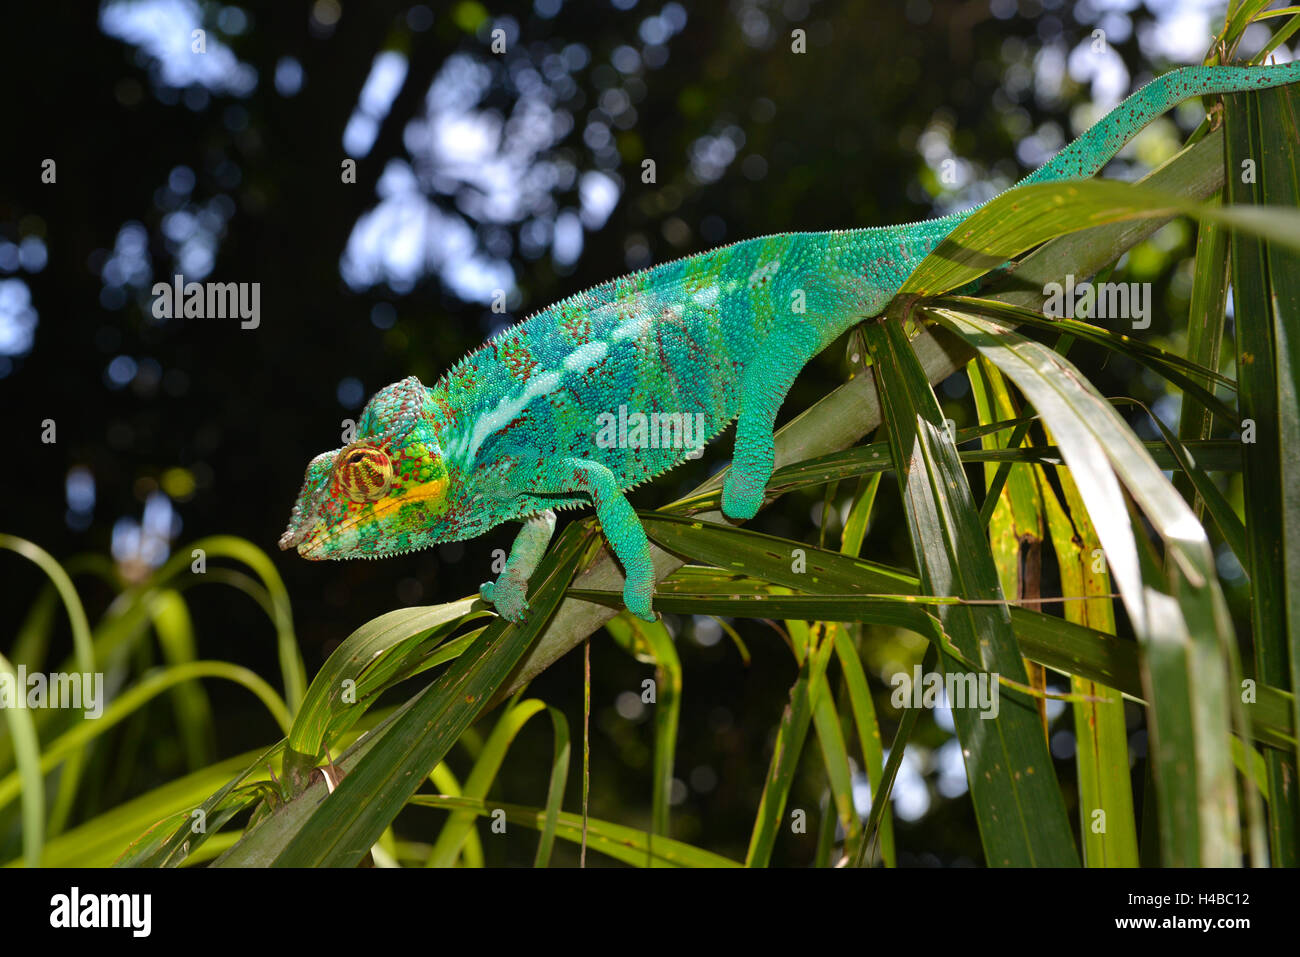 Maschio di panther chameleon (Furcifer pardalis), nelle foreste dell'isola di Nosy Komba, a nord-ovest del Madagascar Foto Stock